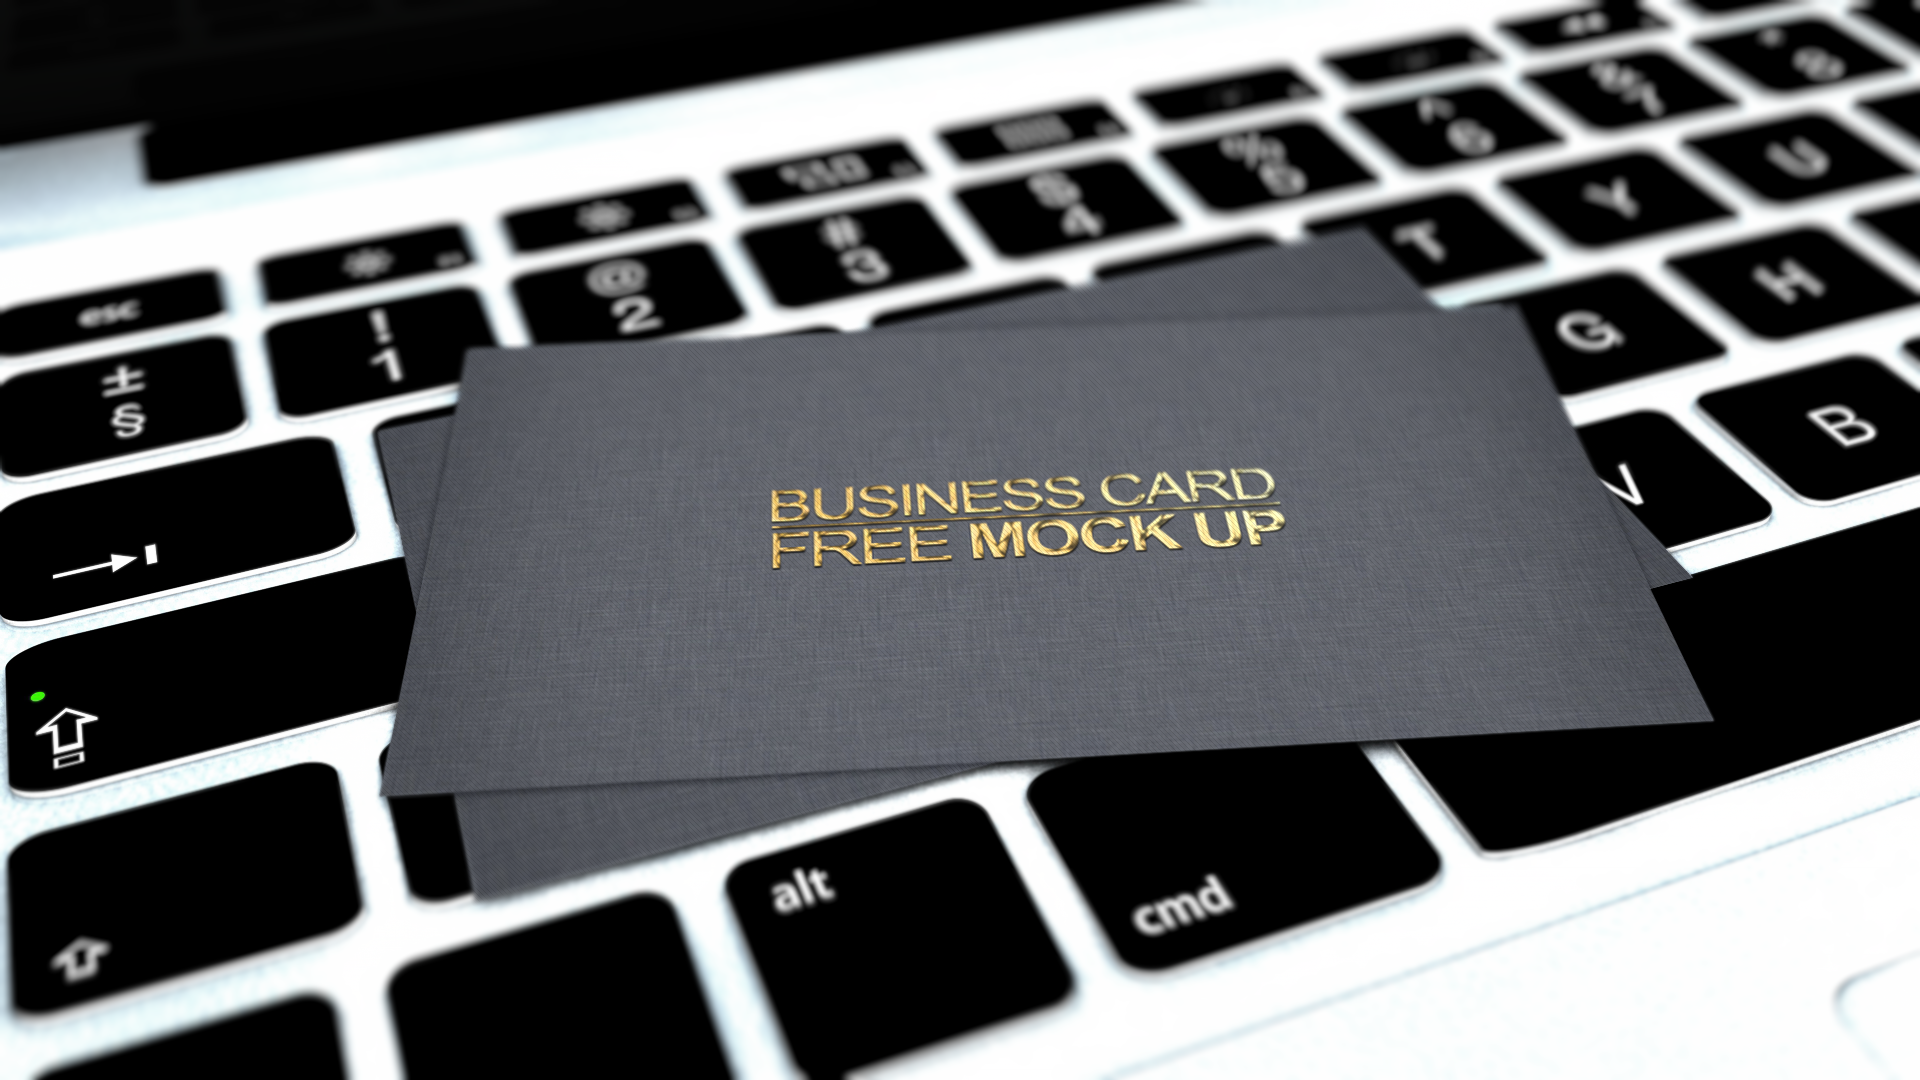 Business card free mock up psd macbook by dimkoopsiantart on business card free mock up psd macbook reheart Image collections